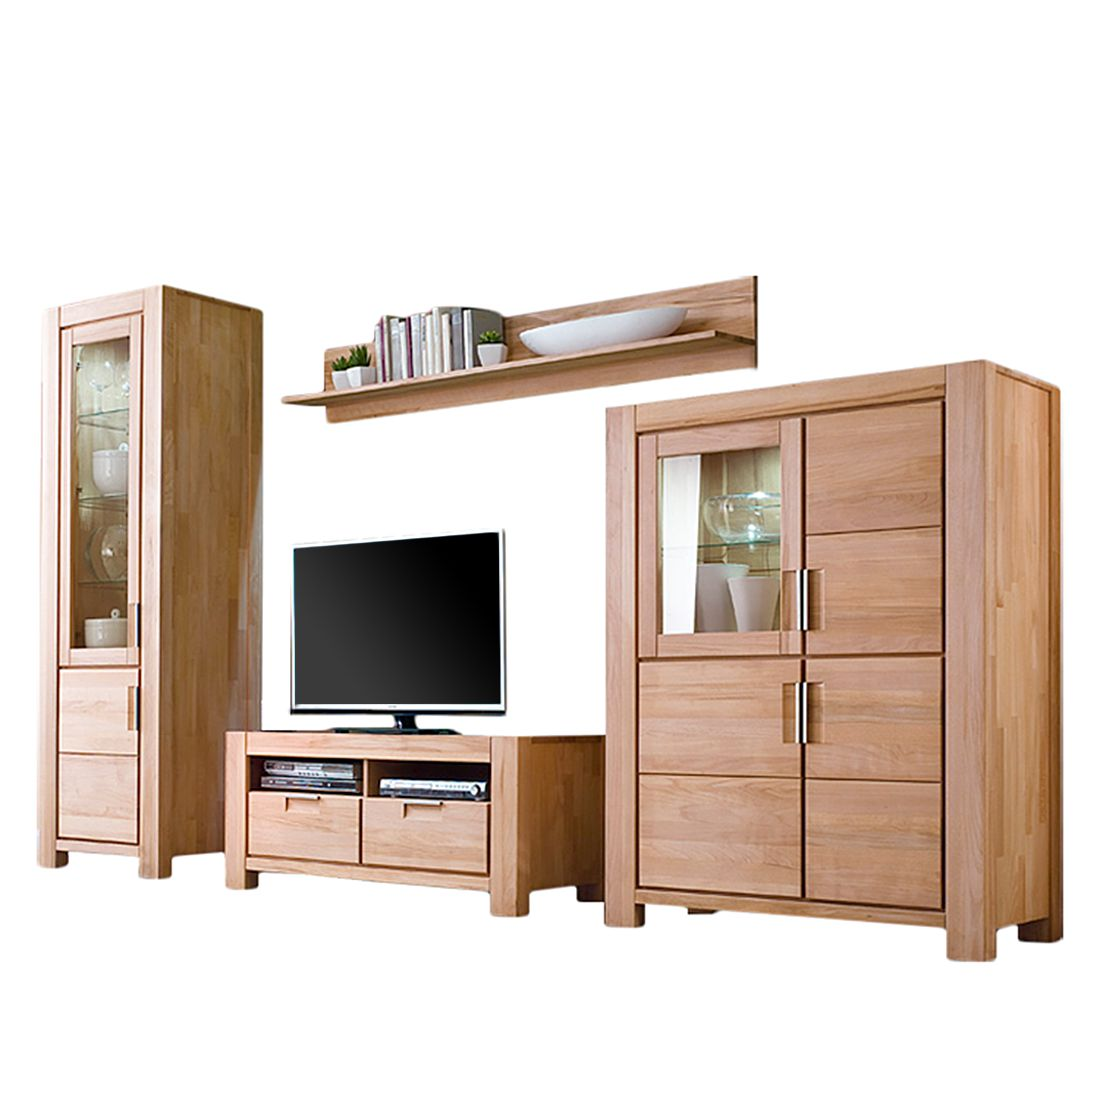 wohnwand dallas ii 4 teilig kernbuche massiv ge lt. Black Bedroom Furniture Sets. Home Design Ideas